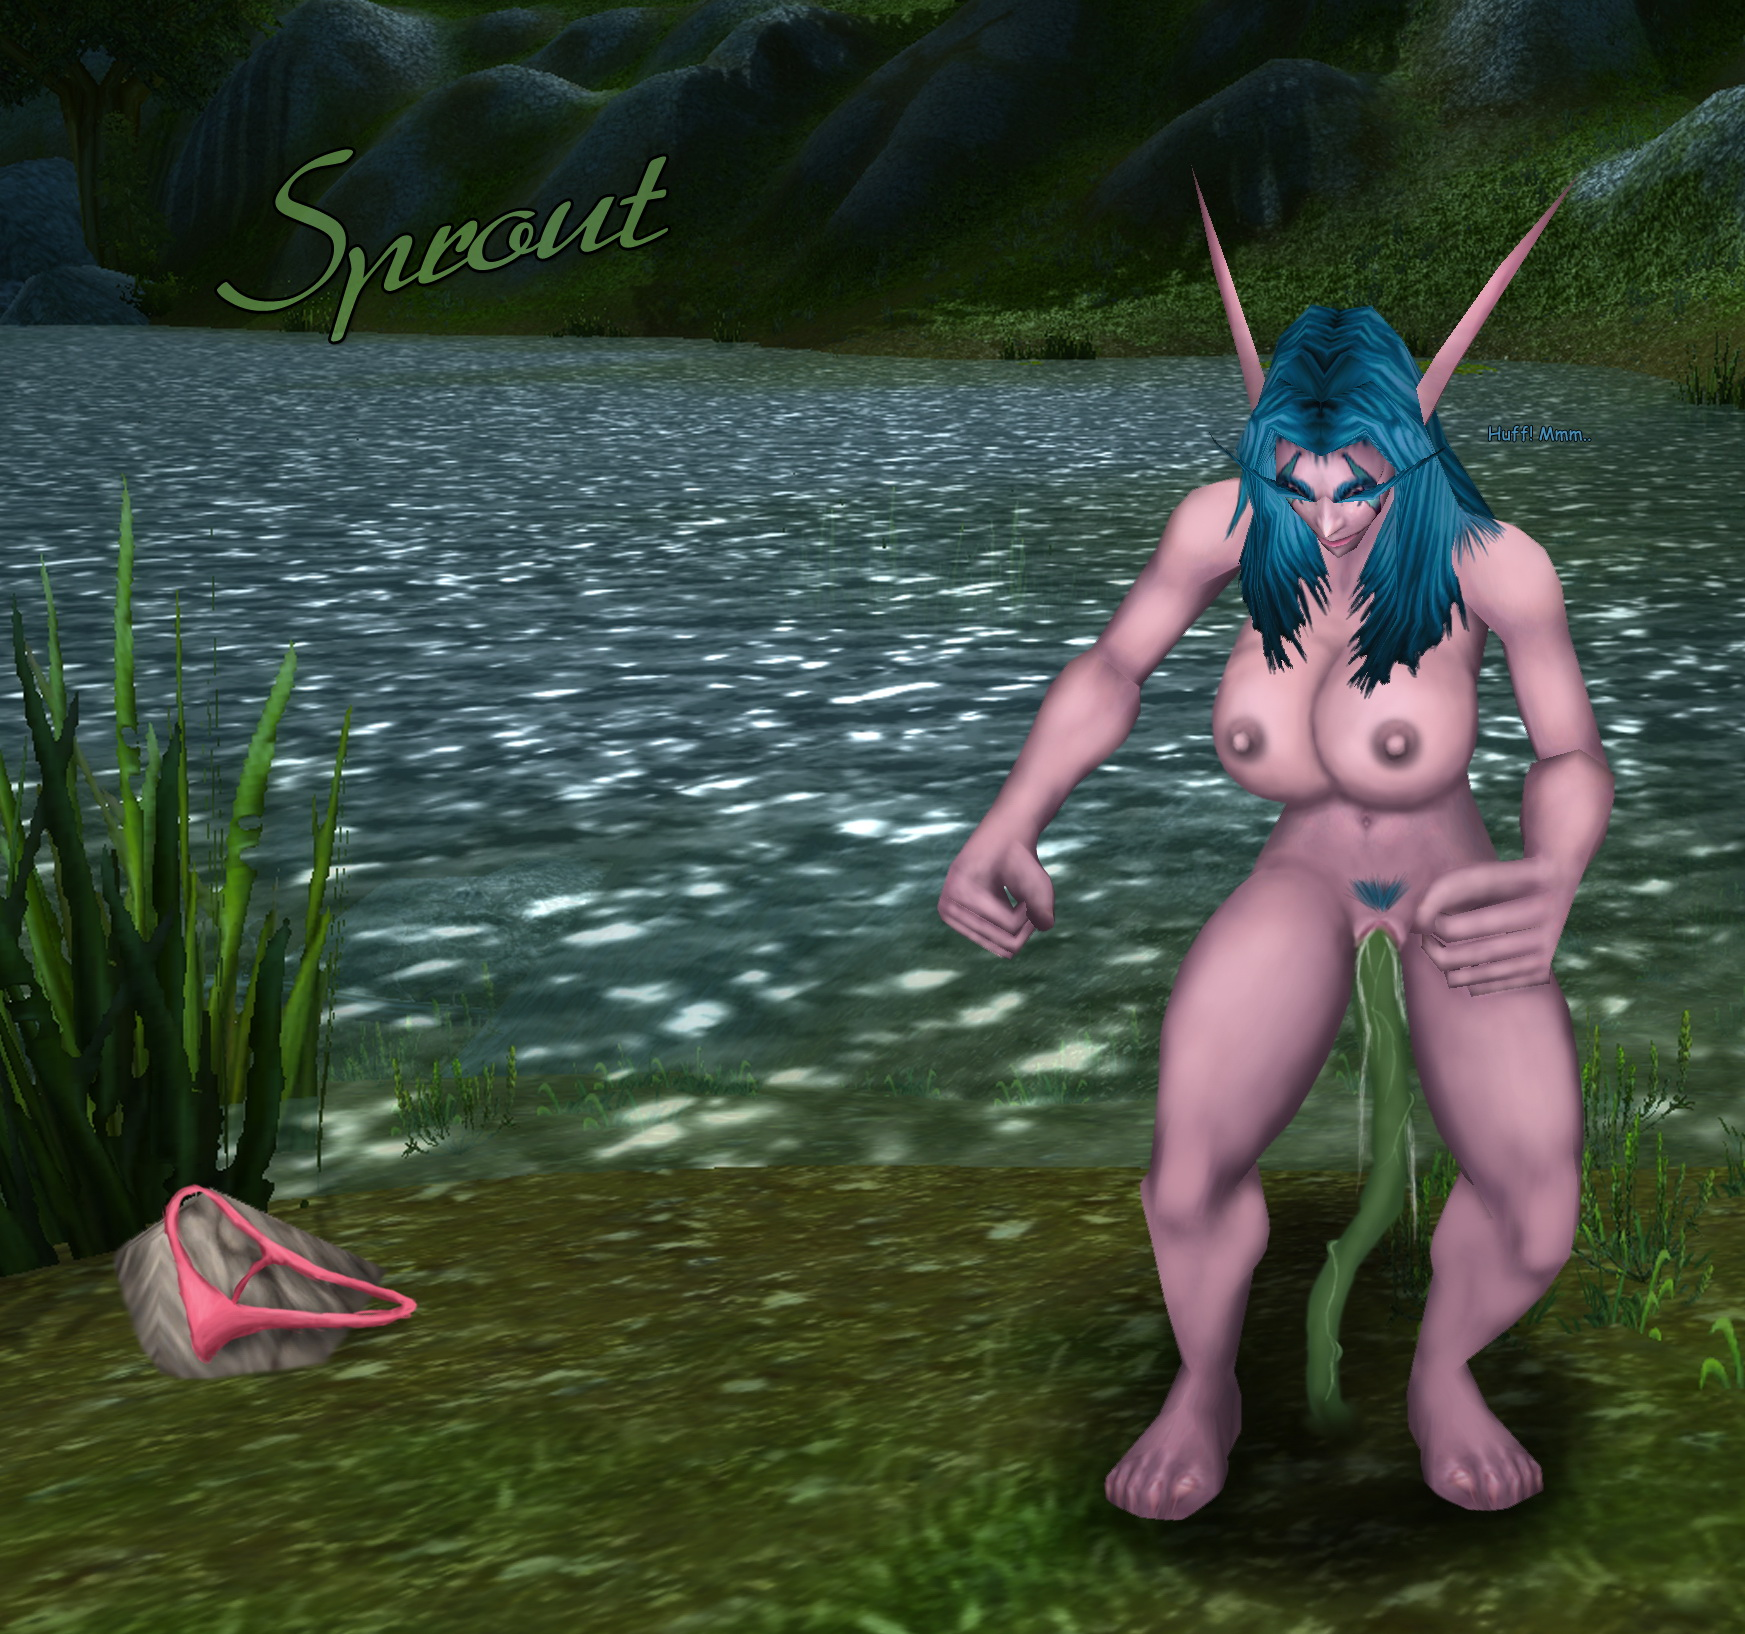 Free Warcraft 3 nude skins nude videos